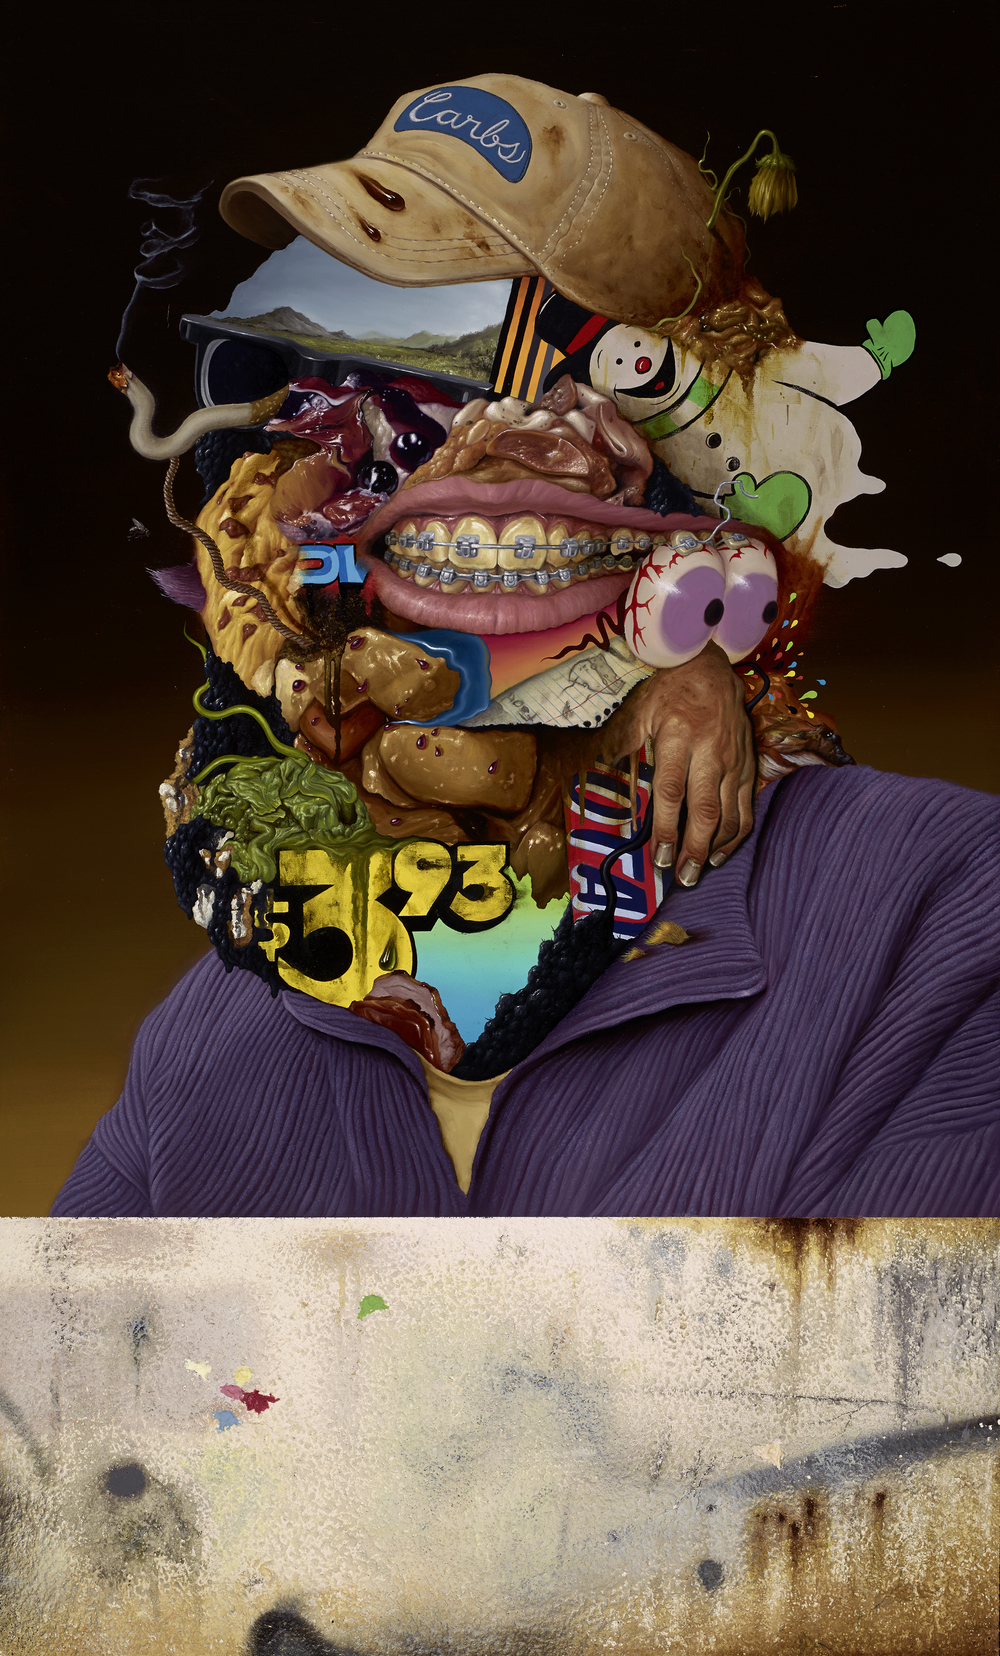 Mad Carbohydrates (Arcimboldo takes a trip to the Topanga Mall)